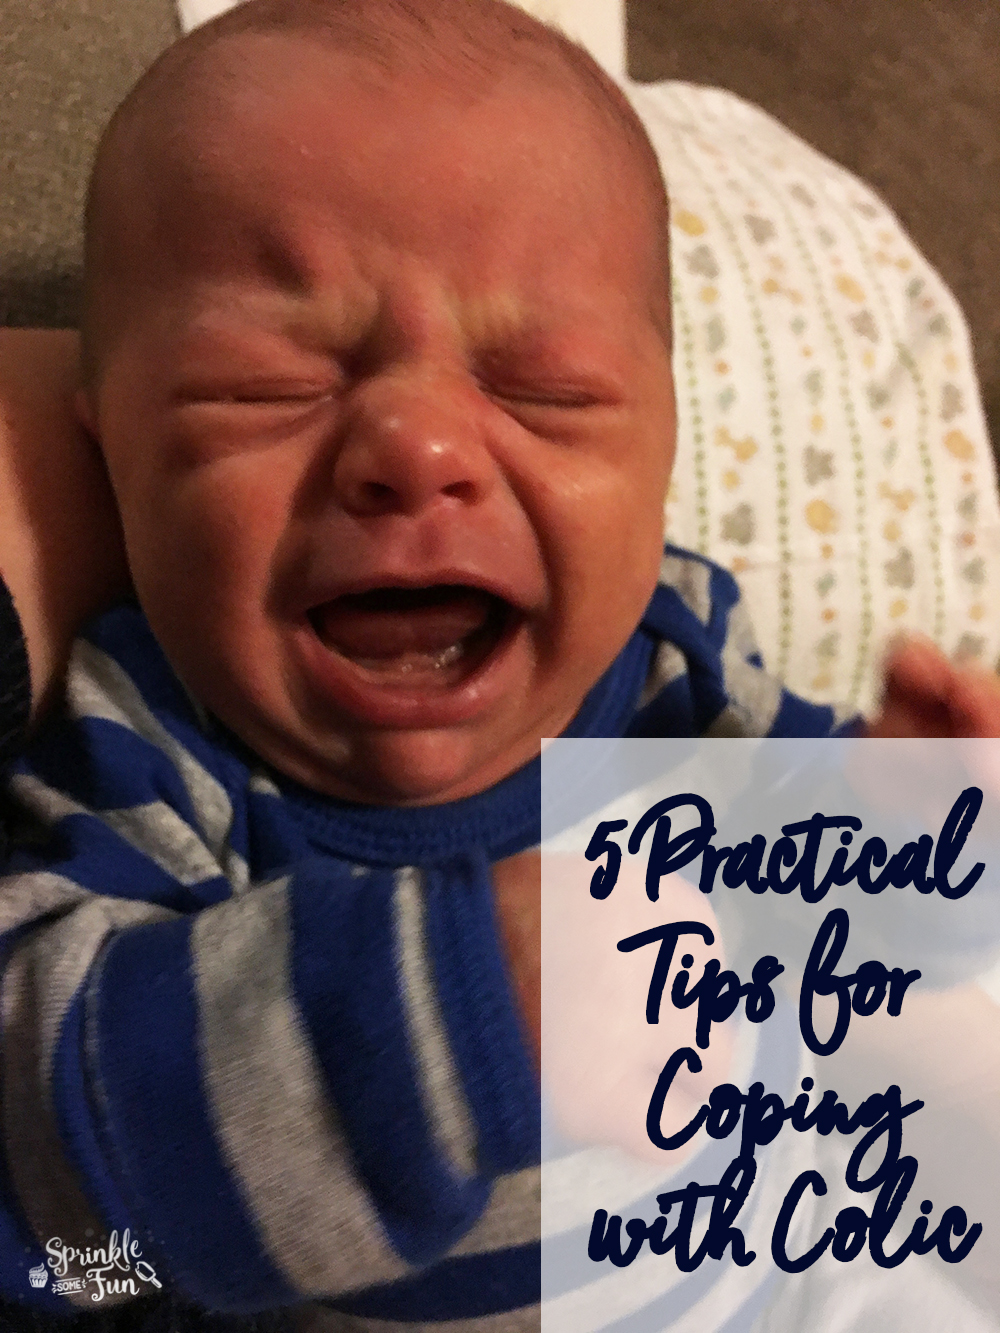 5 Best Practical Tips on Coping with Colic.  Those first few months of infancy are so amazing, but also some of the most trying times.